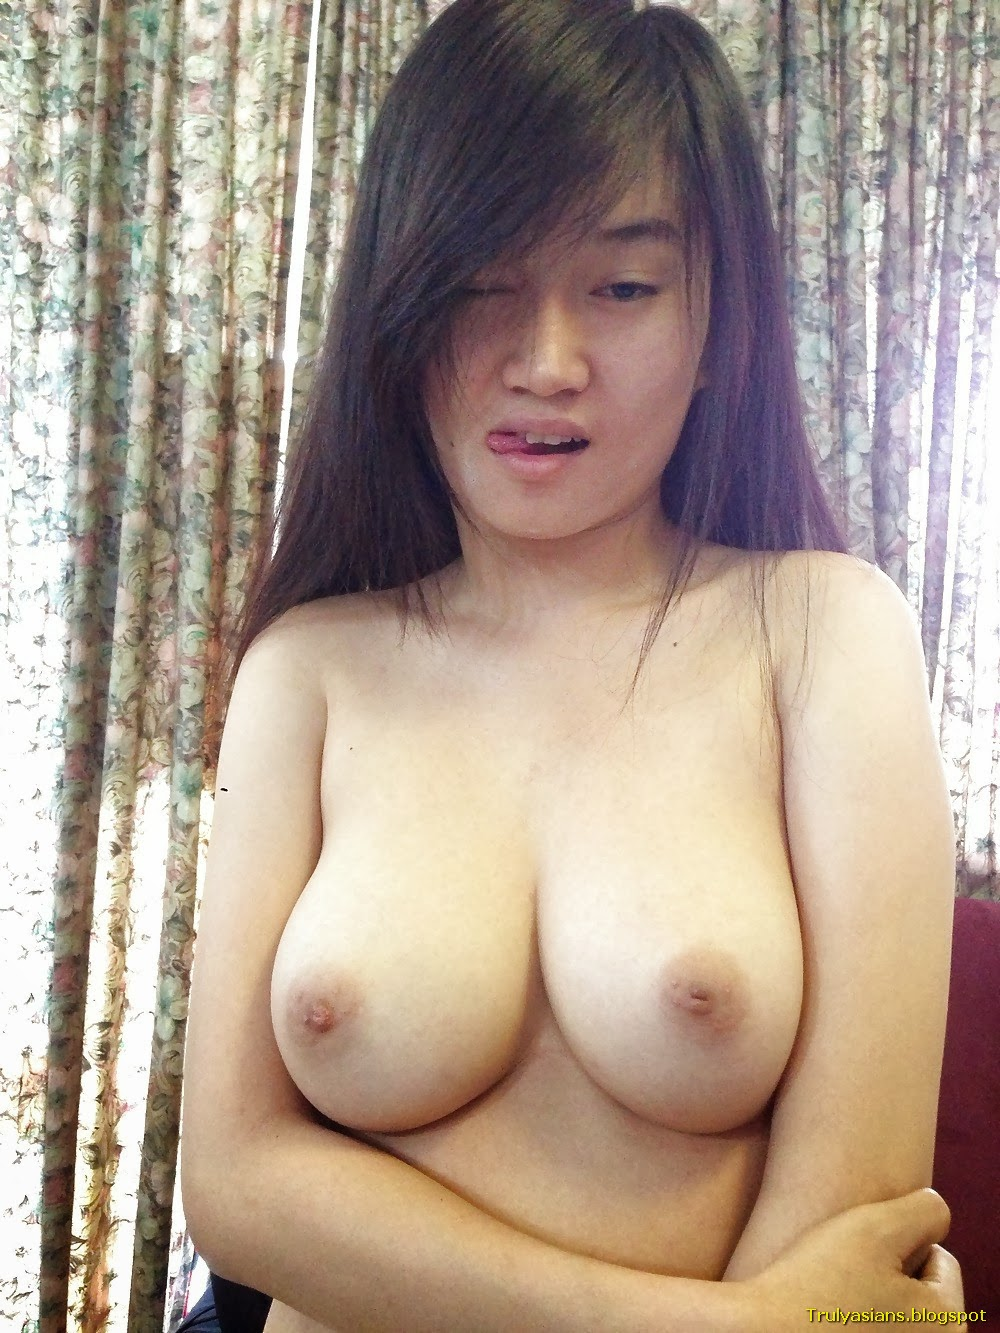 Nude selfie young small breasts